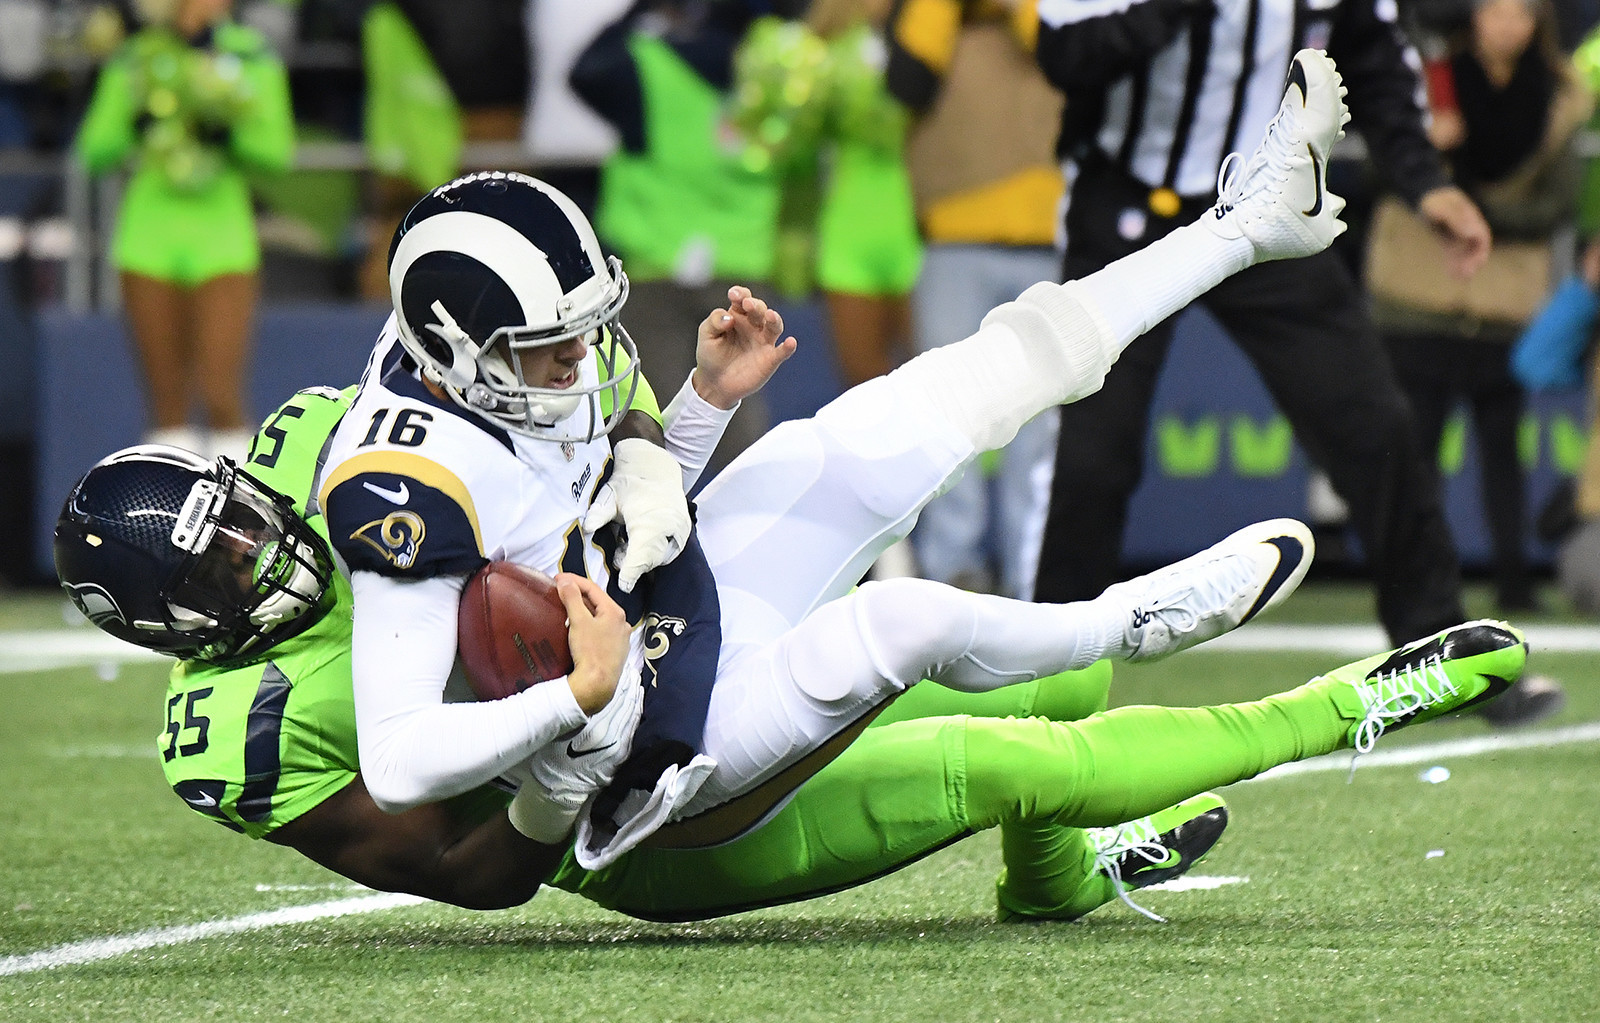 Rams quarterback Jared Goff is sacked by Seahawks defensive end Frank Clark during the first quarter of a game at CenturyLink Field on Dec. 15. (Wally Skalij / Los Angeles Times)